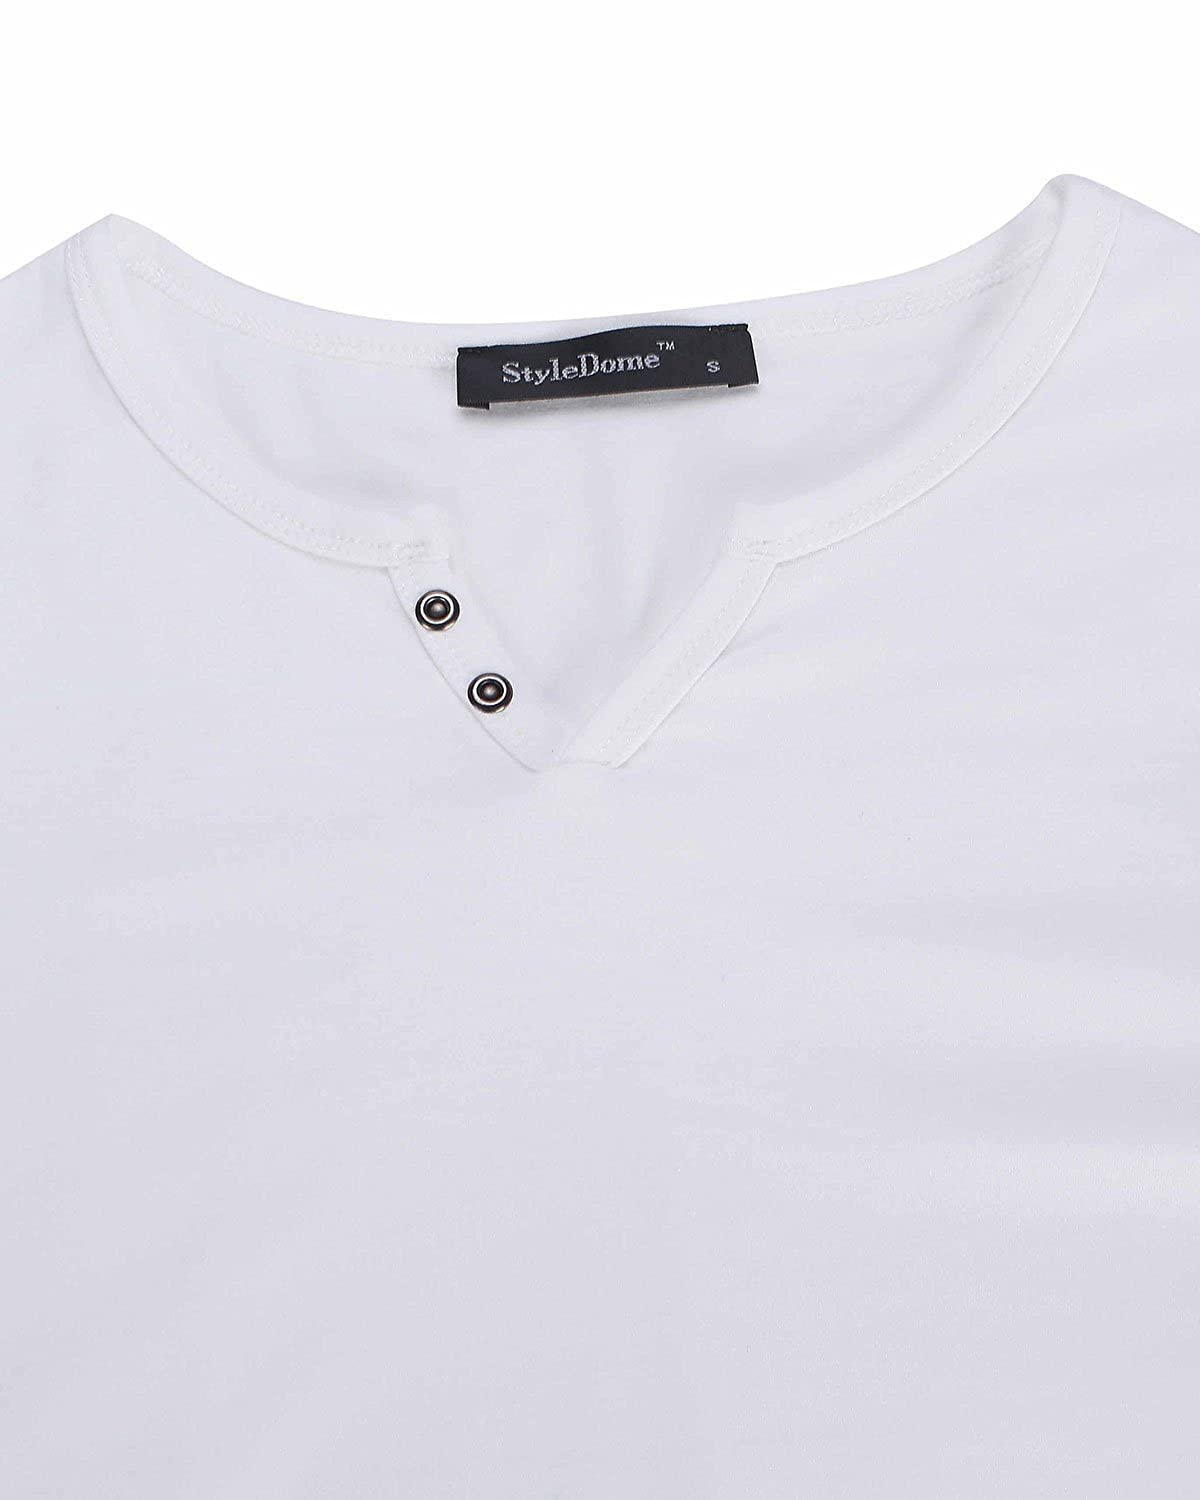 MODCHOK Hombre Camiseta Manga Larga Polo T-Shirt Cuello V Color S/¨Lido Casual Oficina